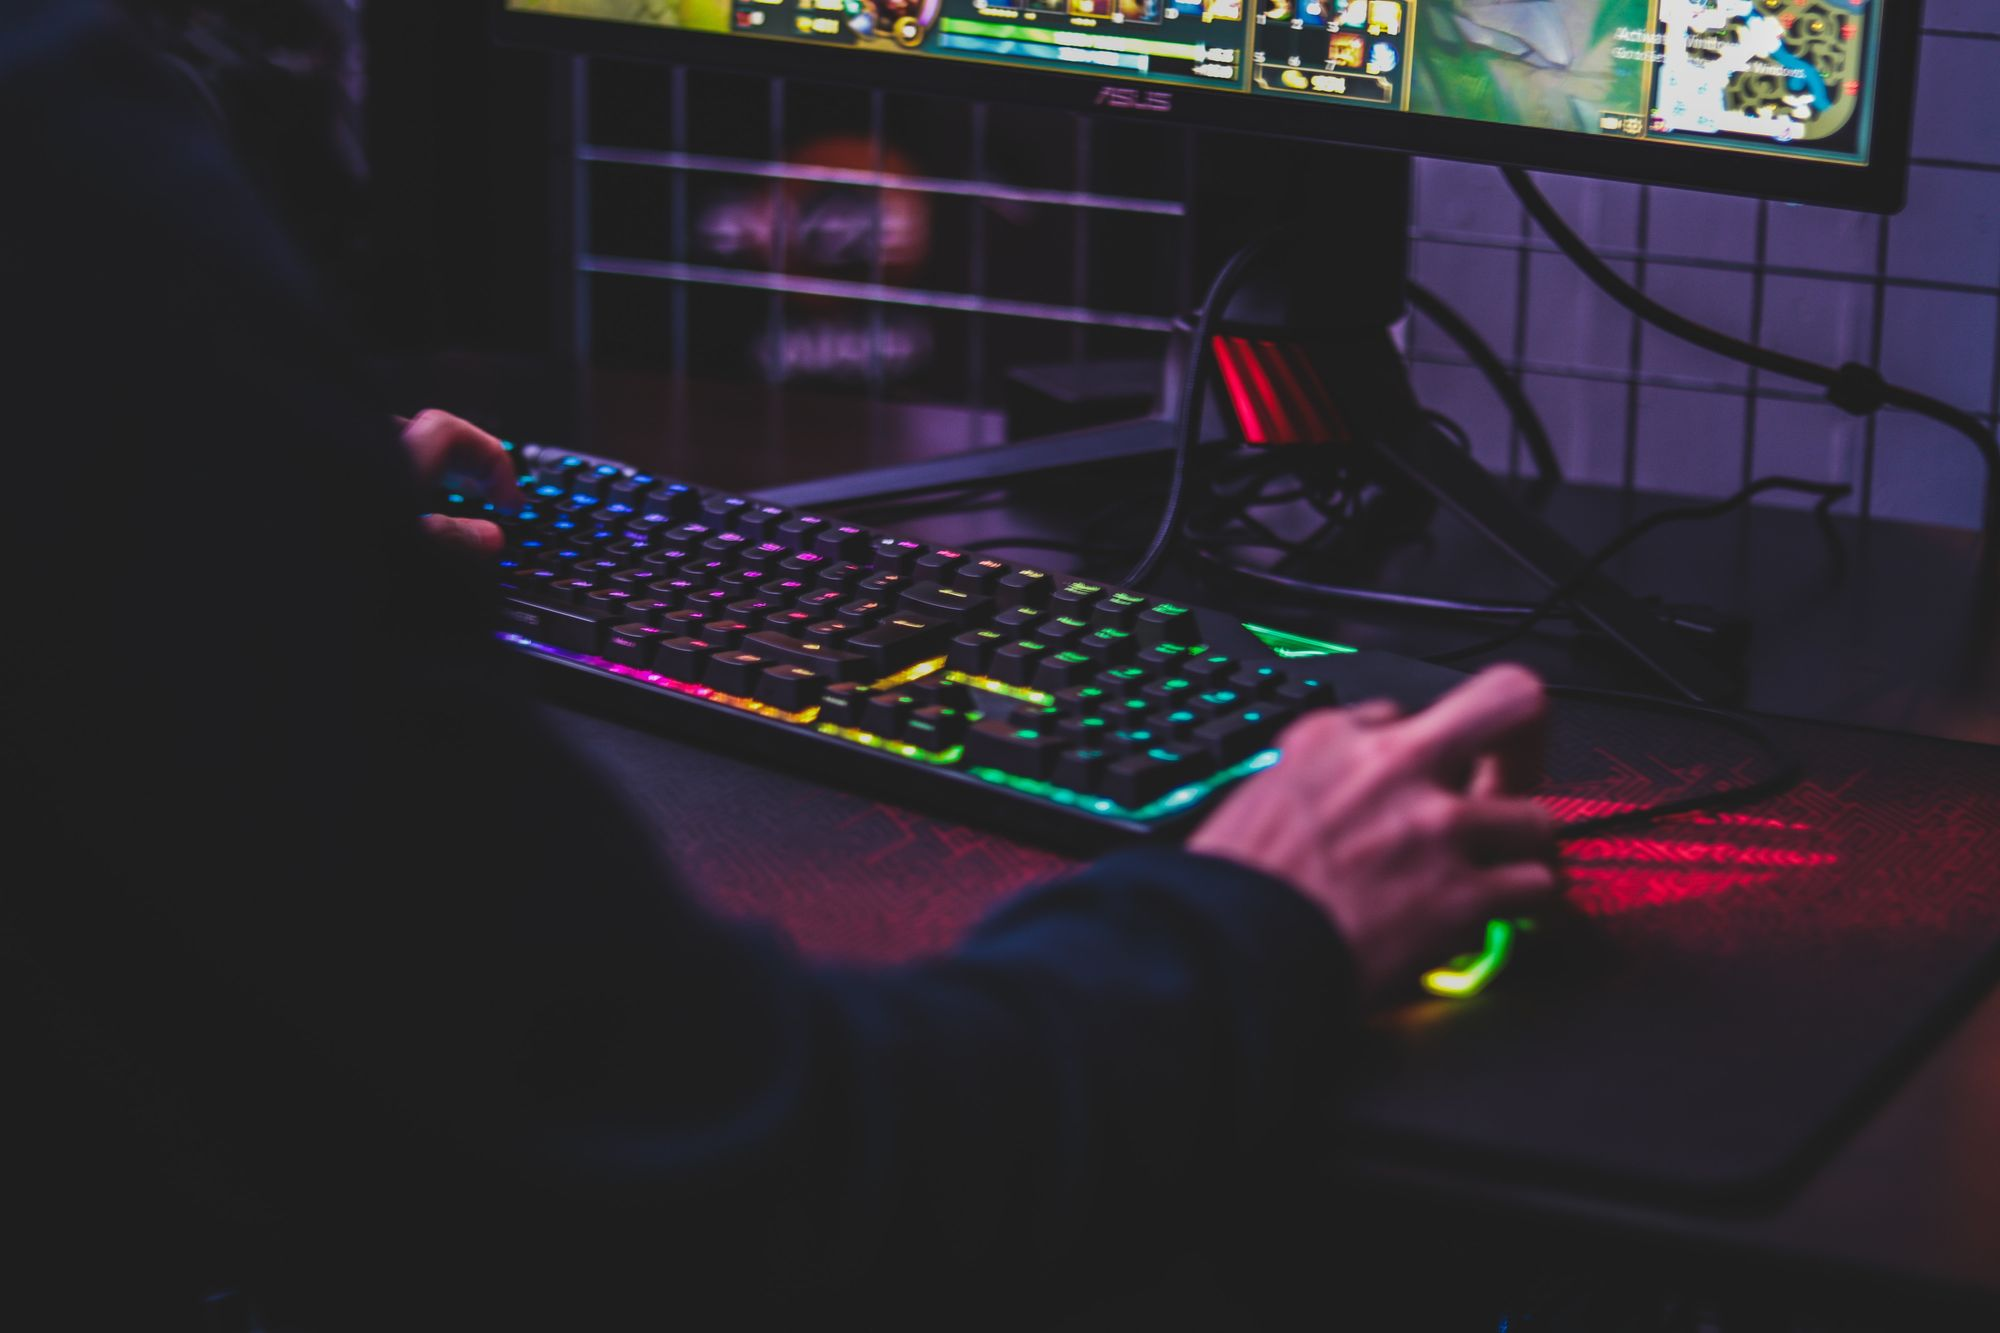 Top 5 Best Wireless Gaming Mice to Buy in 2021